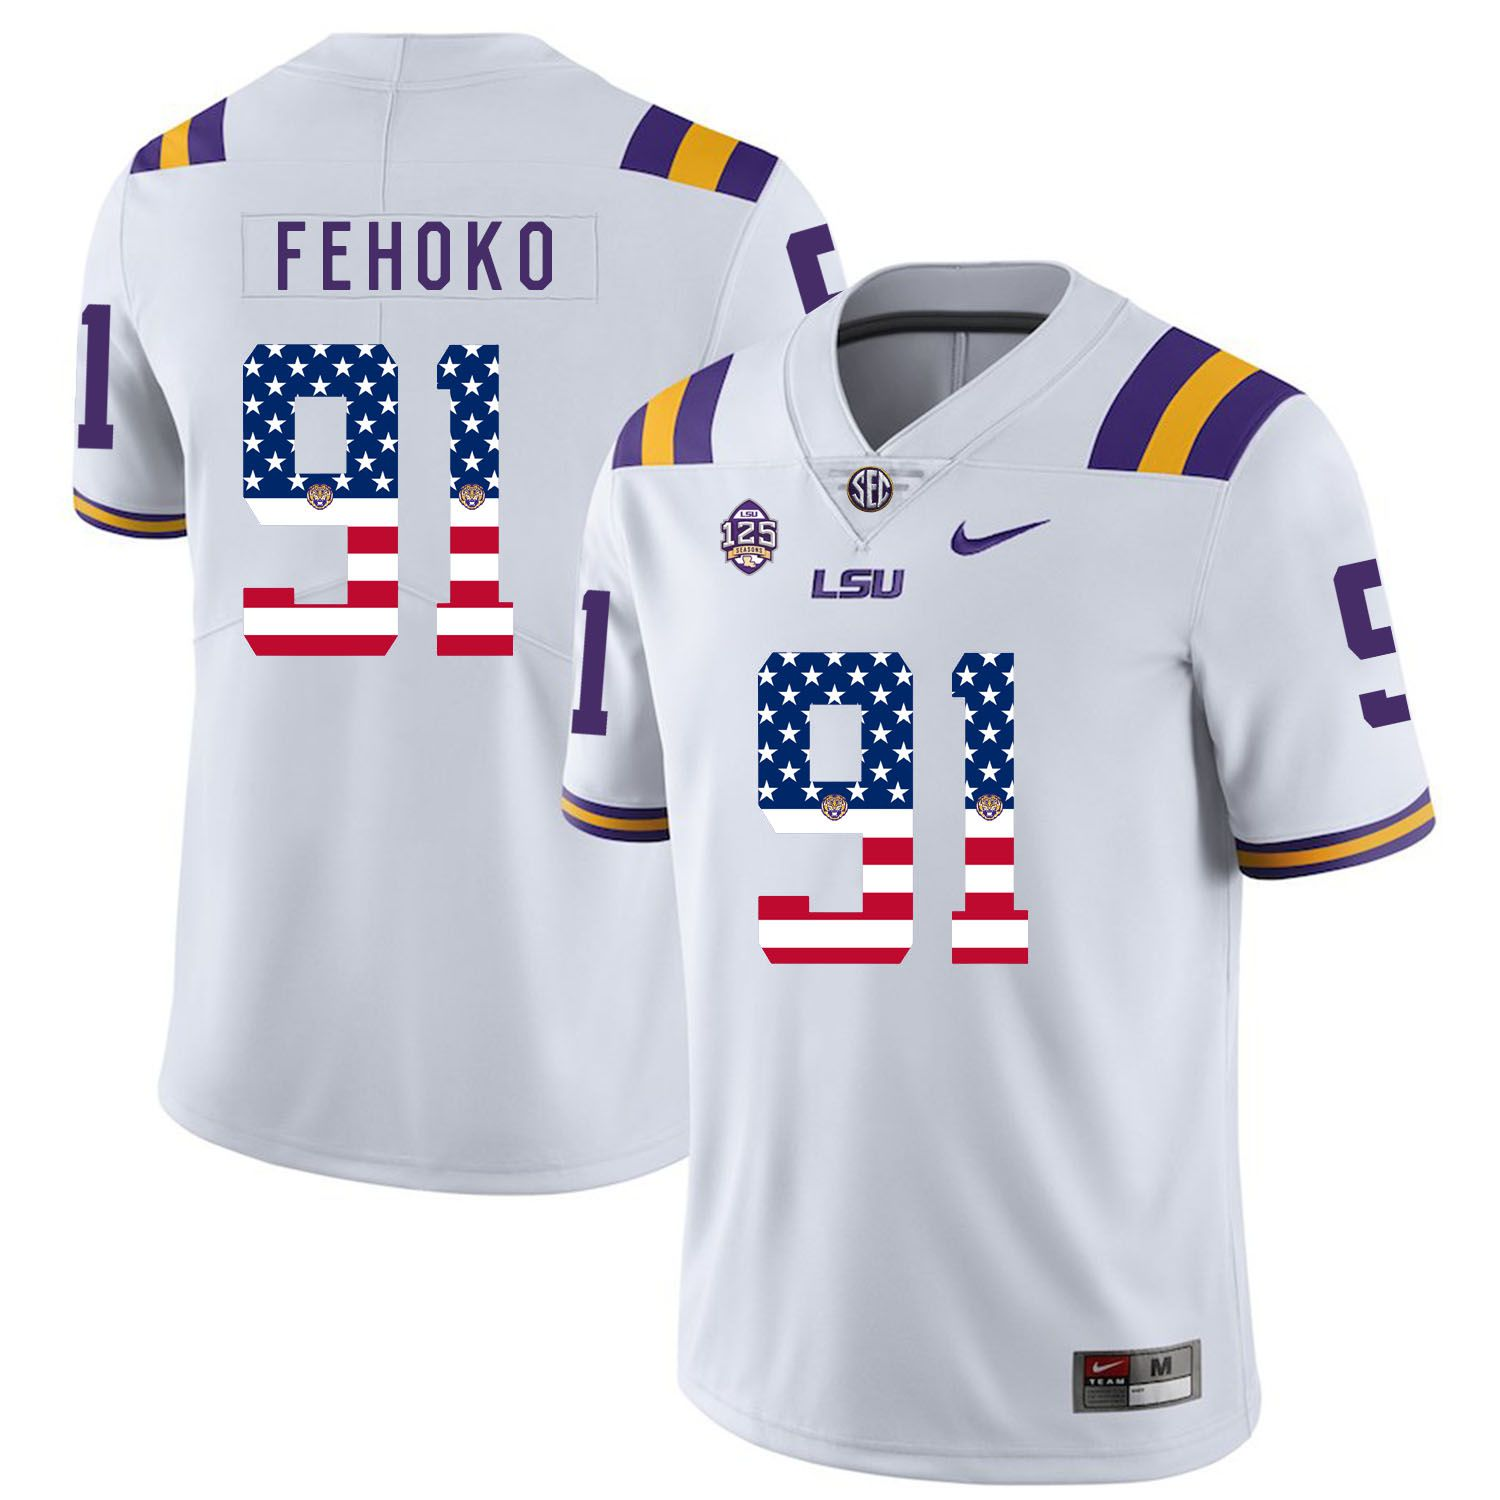 Men LSU Tigers 91 Fehoko White Flag Customized NCAA Jerseys